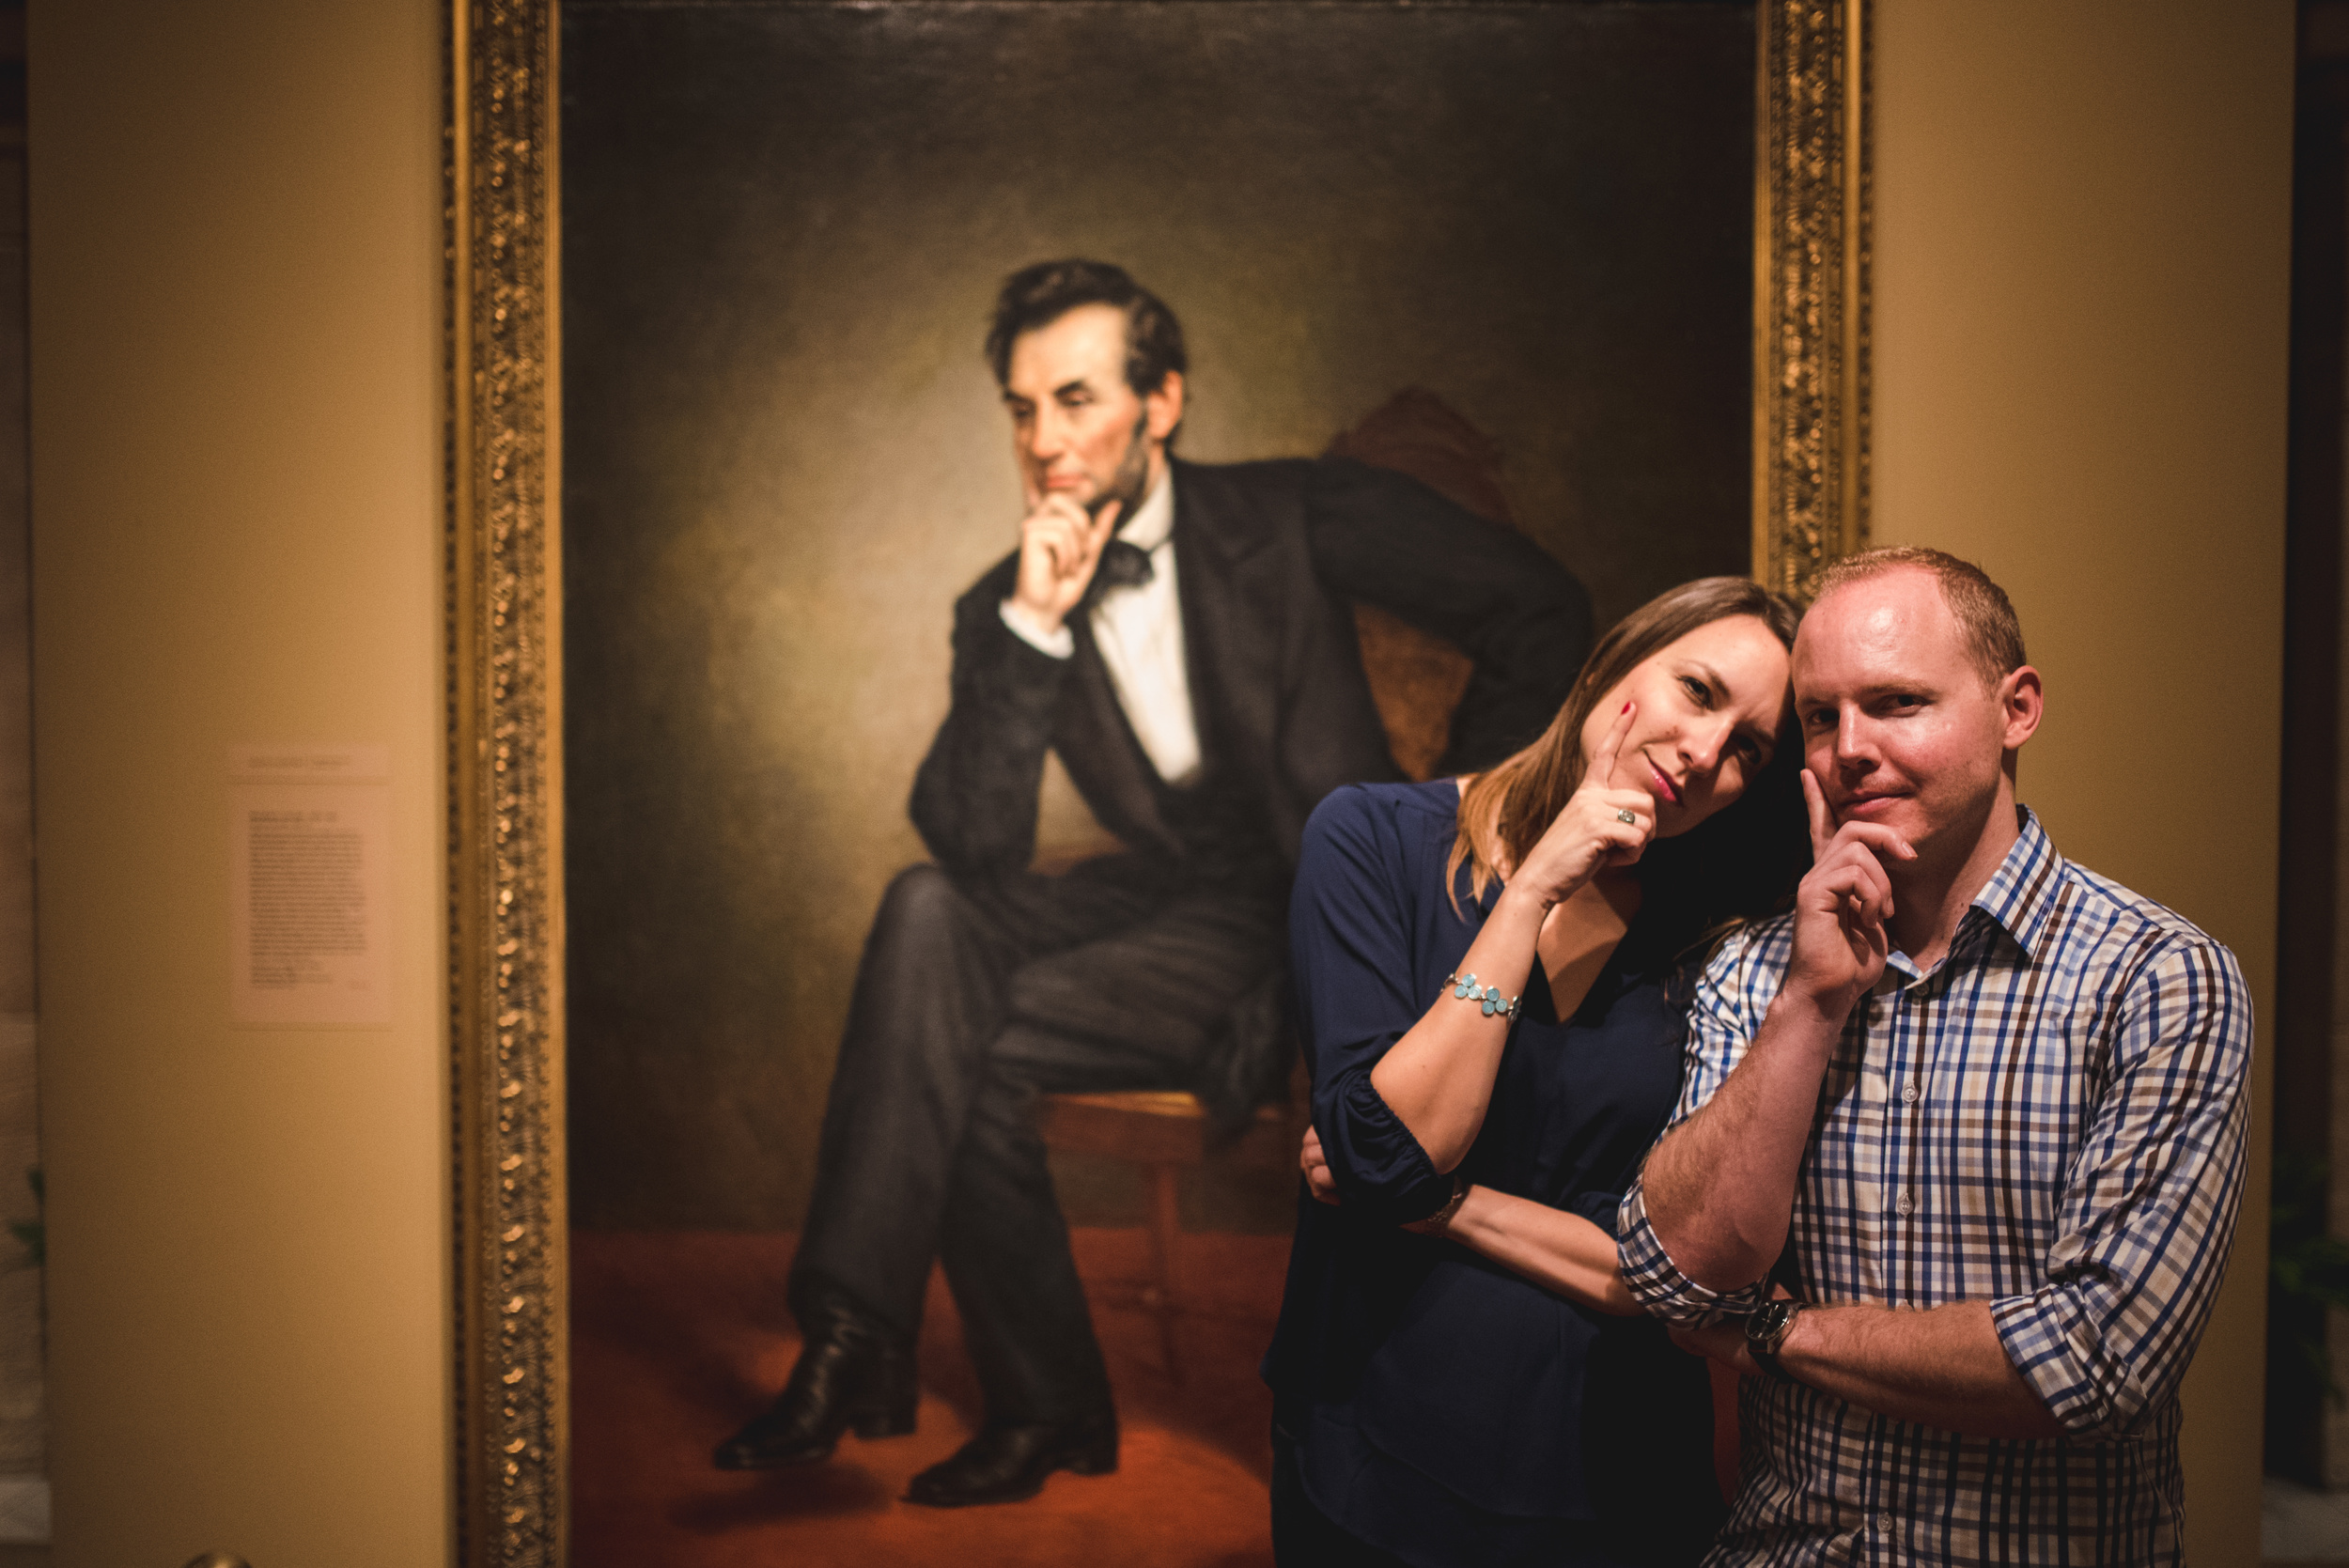 Smithsonian American Art Museum engagement session by Mantas Kubilinskas-13.jpg